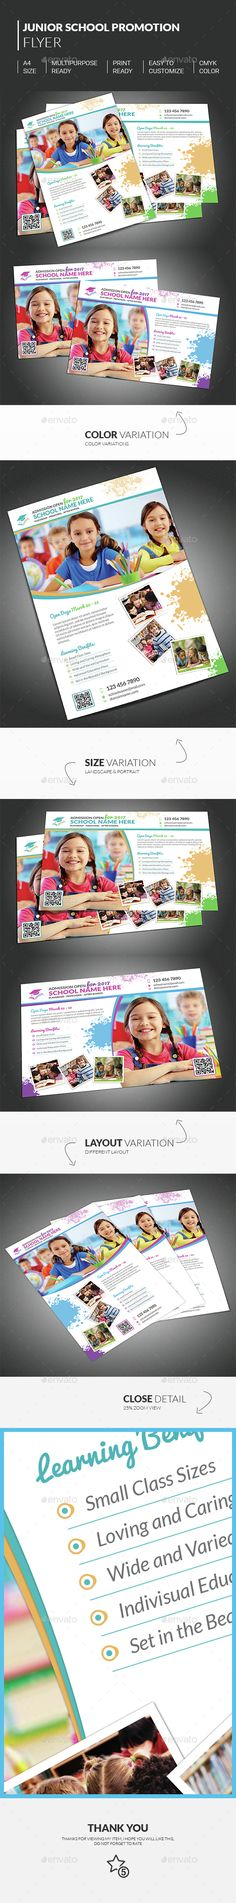 Special Junior School Promotion Flyer Template, Suitable for junior or preschool theme perfect for informing school admission, new academic year or promoting the opening of new school.